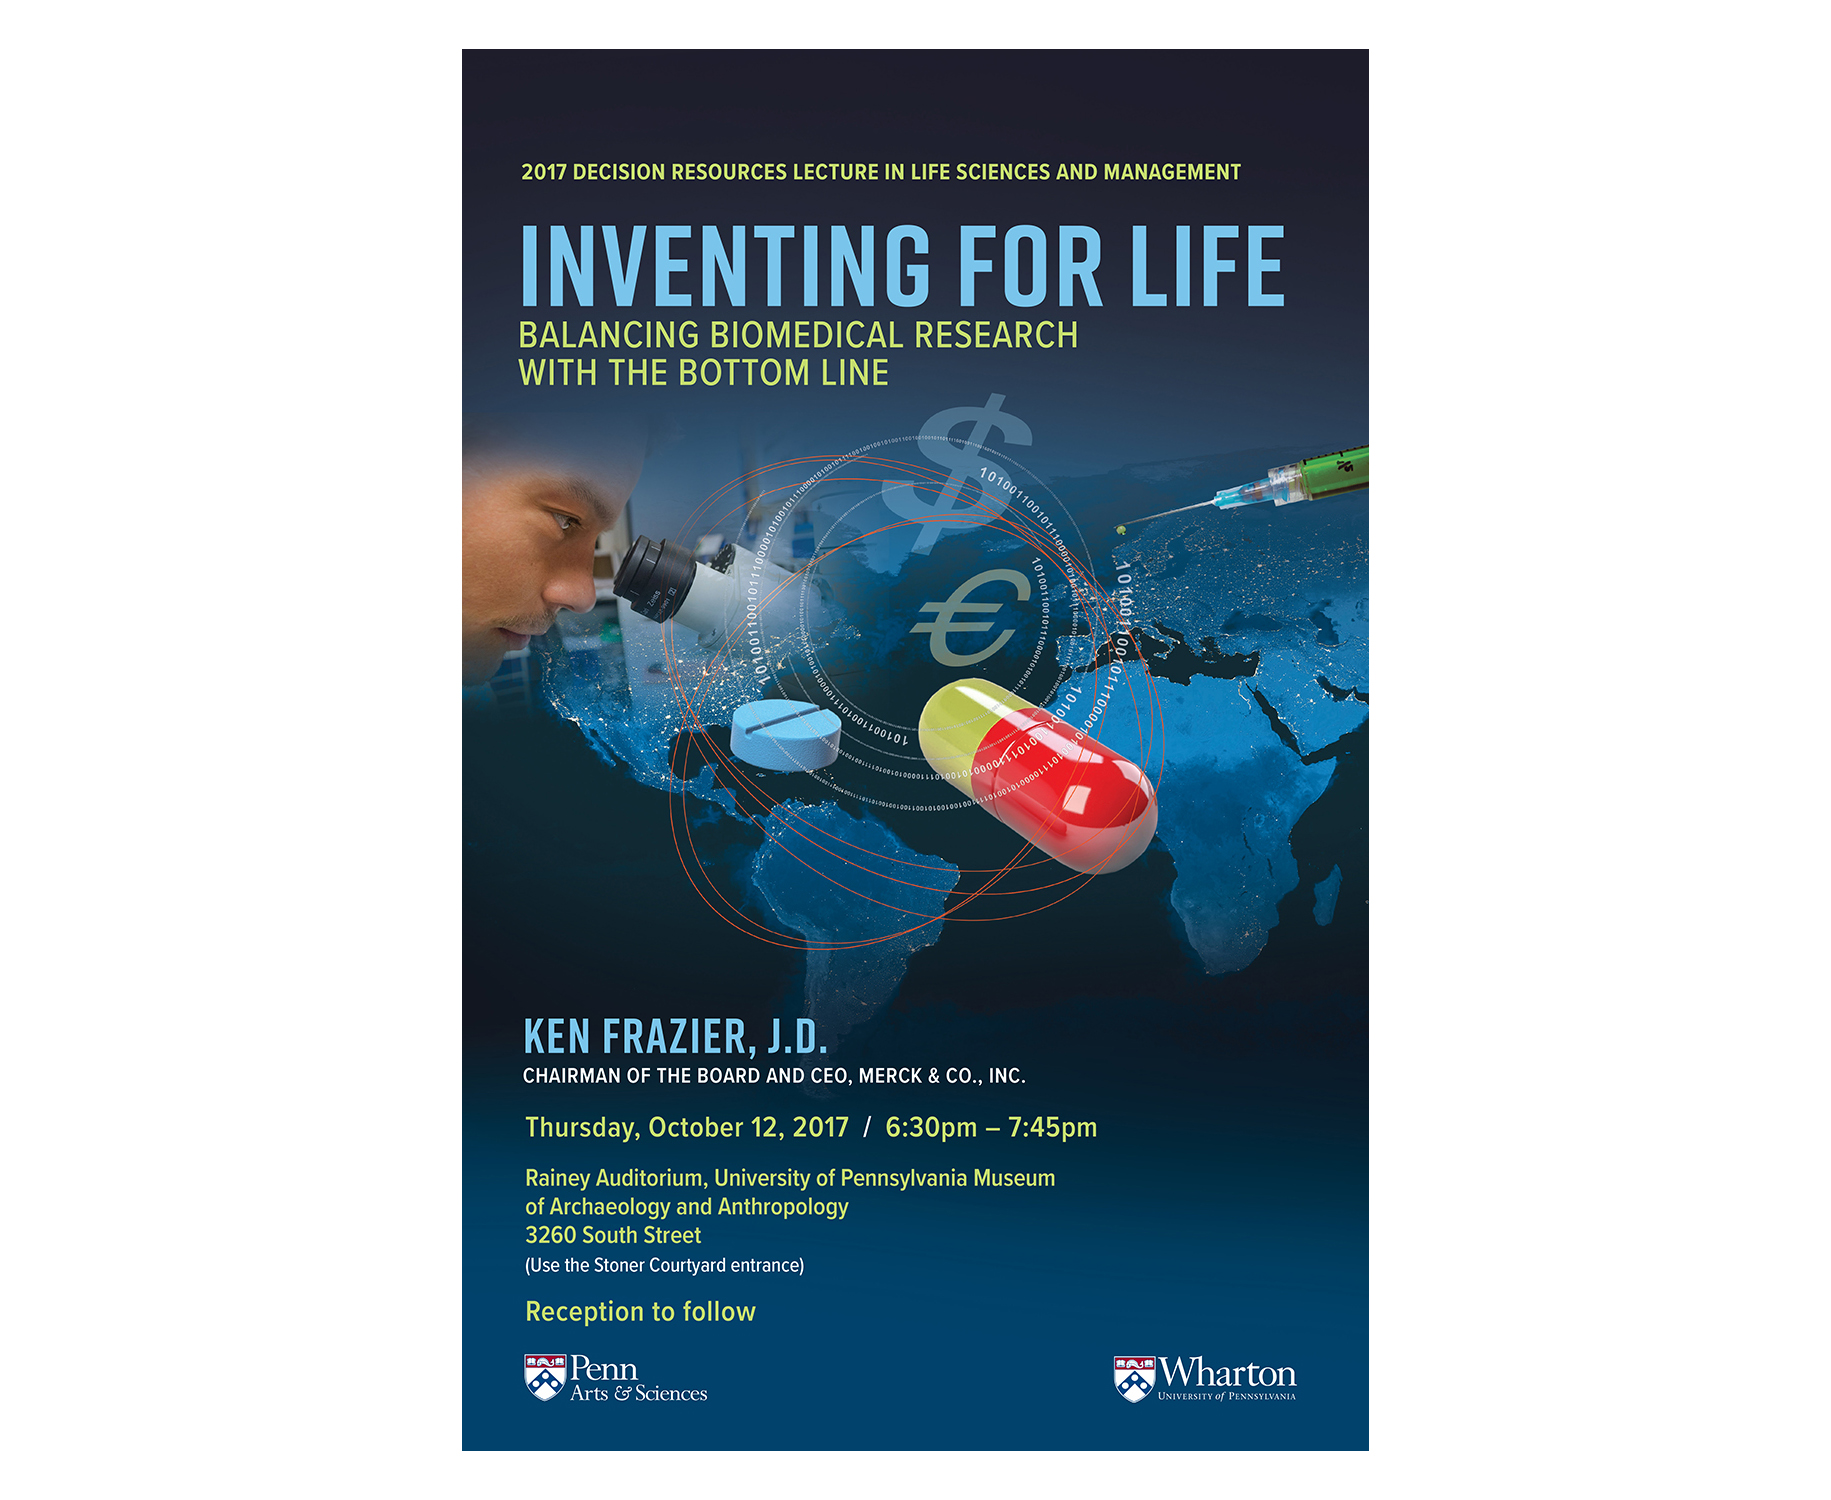 kelsh-wilson-design-penn-life-sciences-management-event-promo-poster-2017.jpg